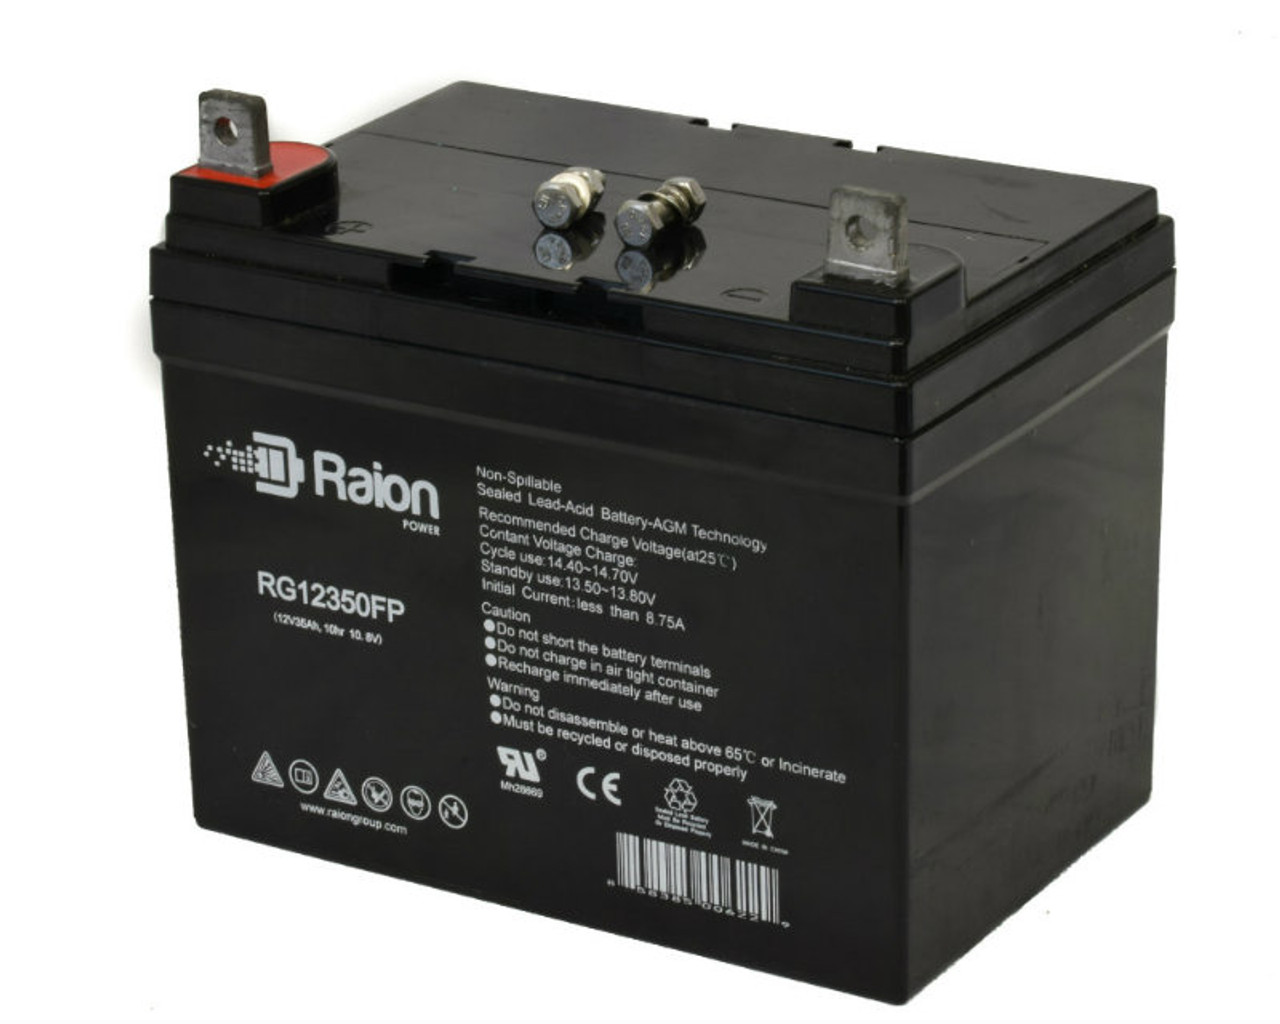 RG12350FP Sealed Lead Acid Battery Pack For Fortress Scooters 2200 FS U1 Mobility Scooter